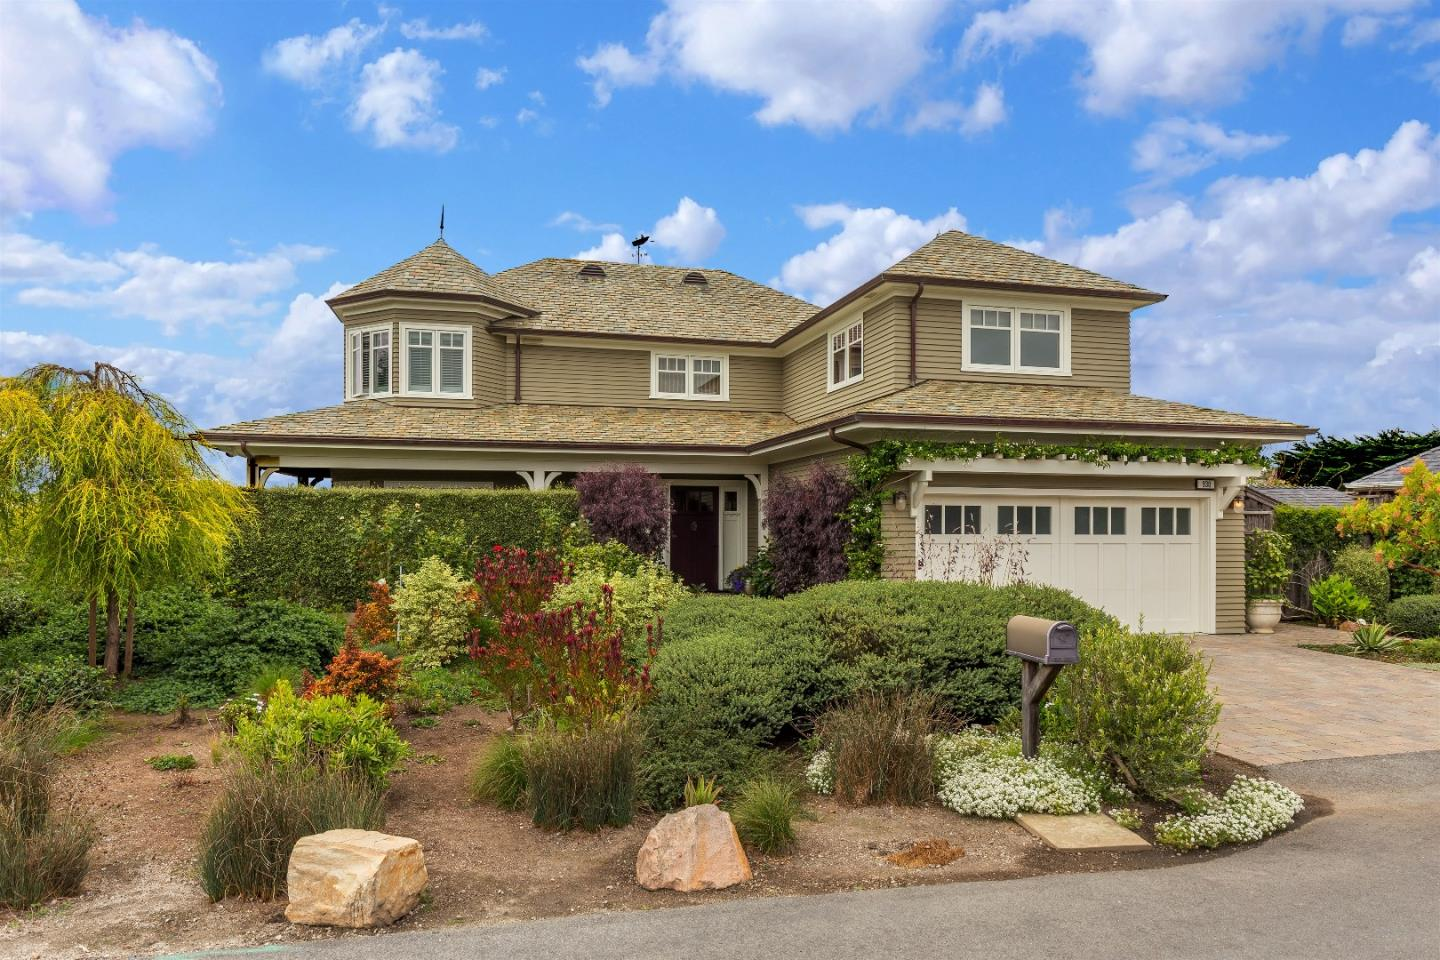 Single Family Home for Sale at 930 Railroad Avenue Half Moon Bay, California 94019 United States